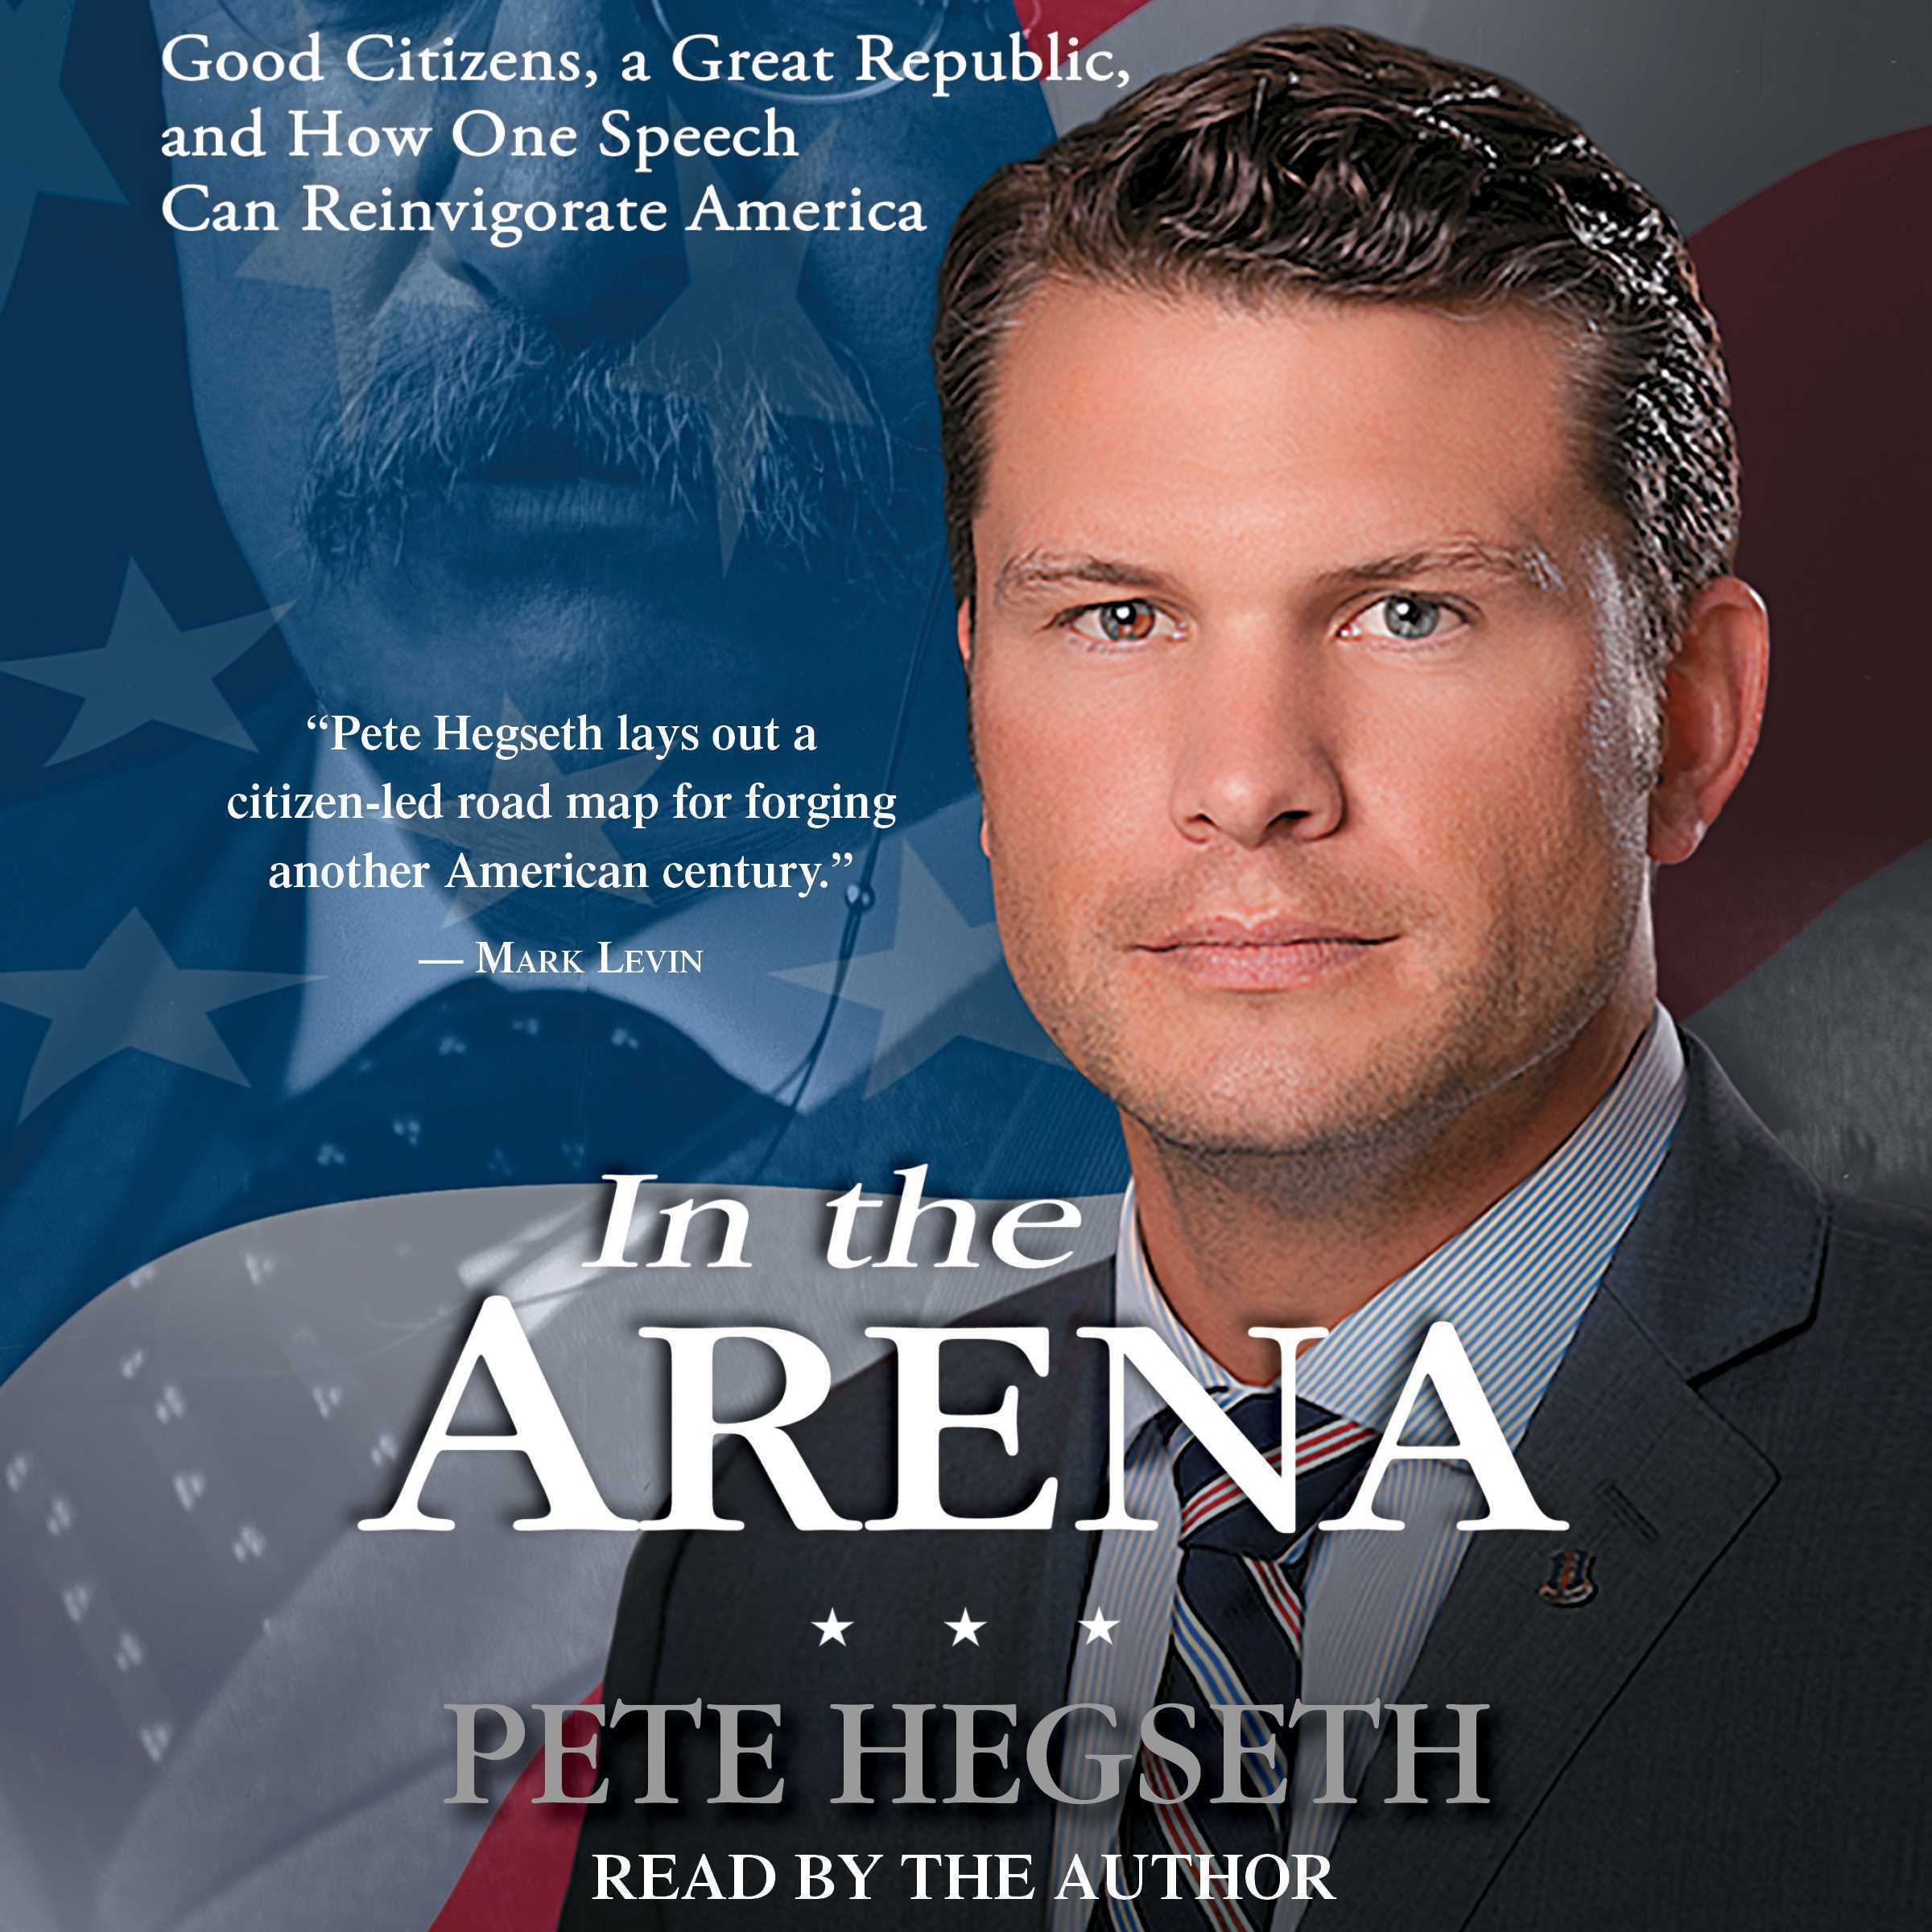 Printable In the Arena: Good Citizens, a Great Republic, and How One Speech Can Reinvigorate America Audiobook Cover Art